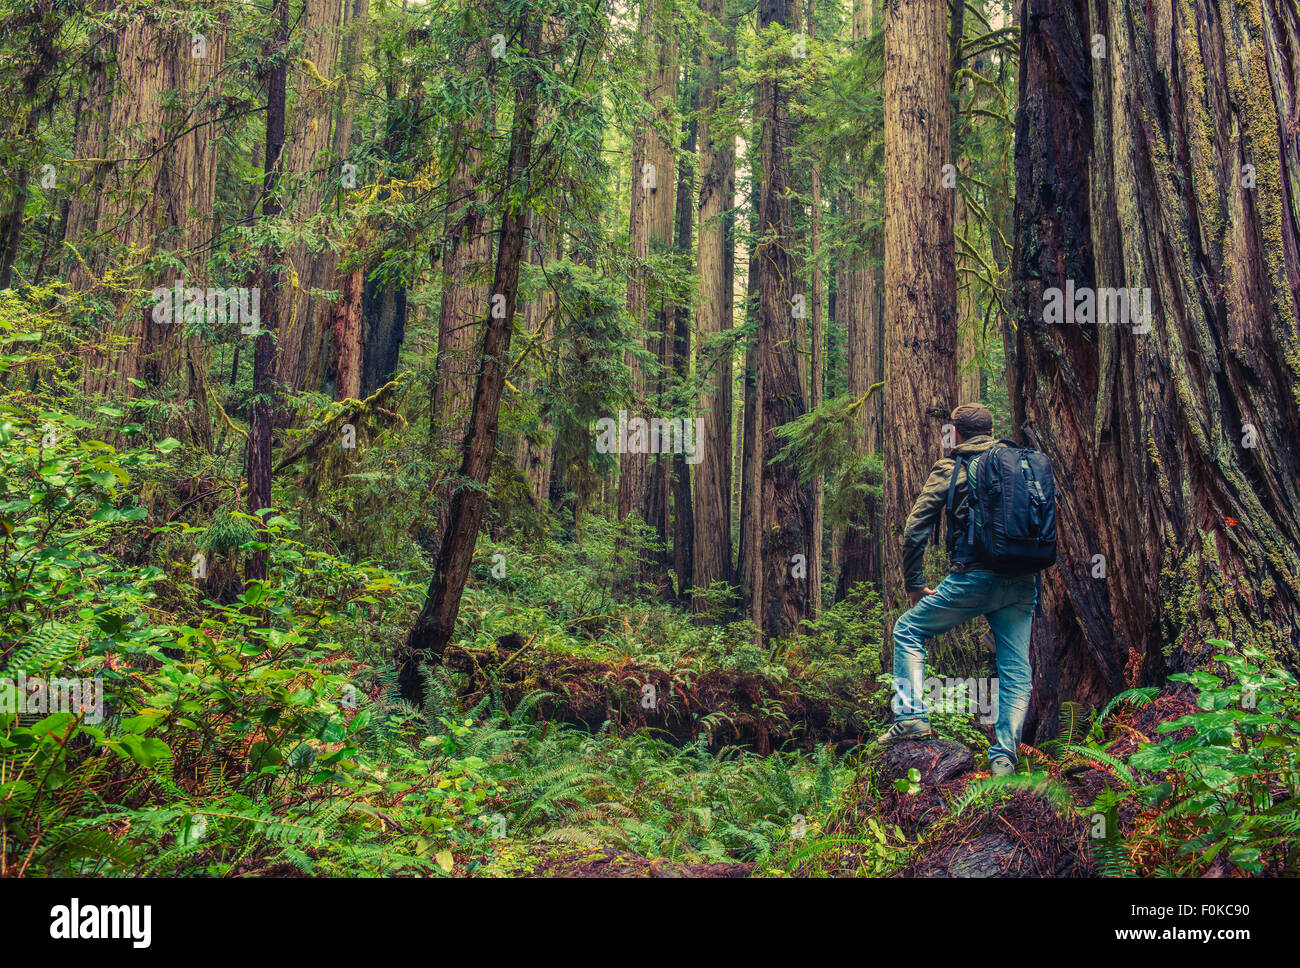 Redwood Hiking. Men with Backpack Surrounded By Redwood Forest. California, United States. - Stock Image